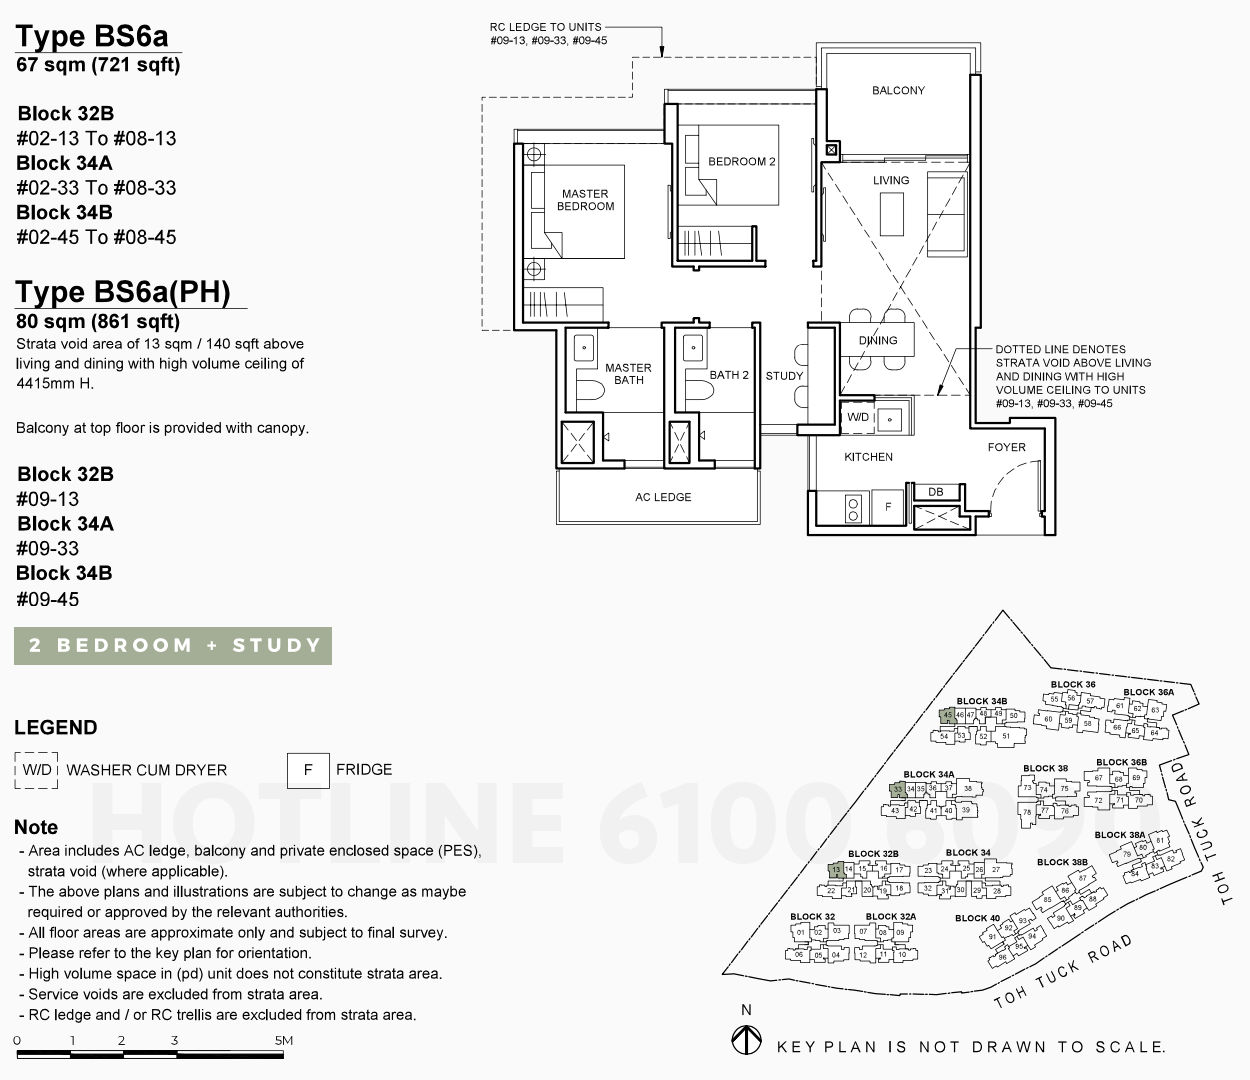 Forett Condo Floor Plan . 2 Bedroom Study Type BS6a